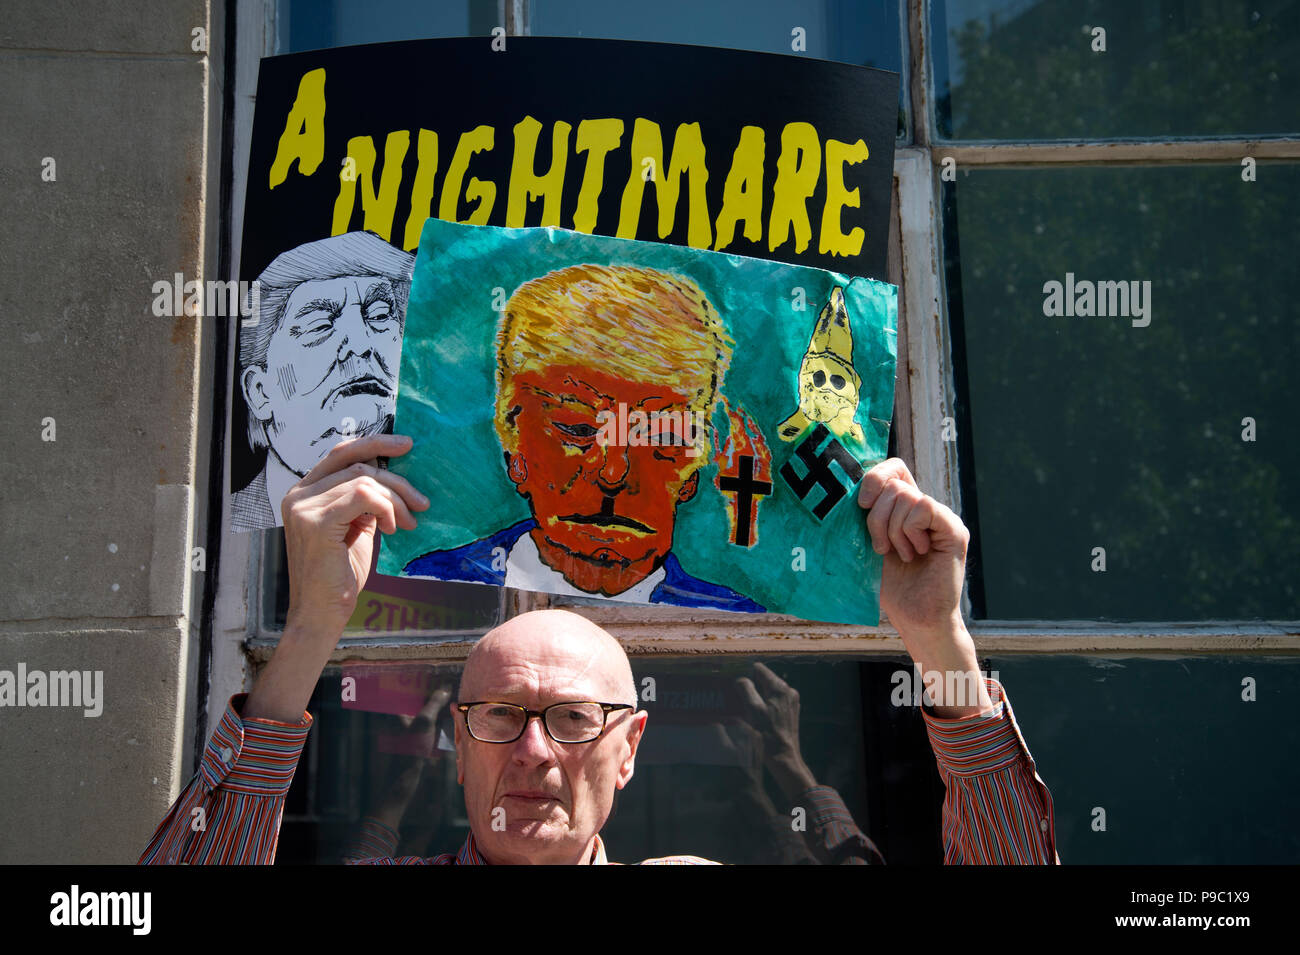 July 13th 2018.Central London. Demonstration against the visit of US President Donald Trump to England. A man holds a painting of Trump in front of an Stock Photo